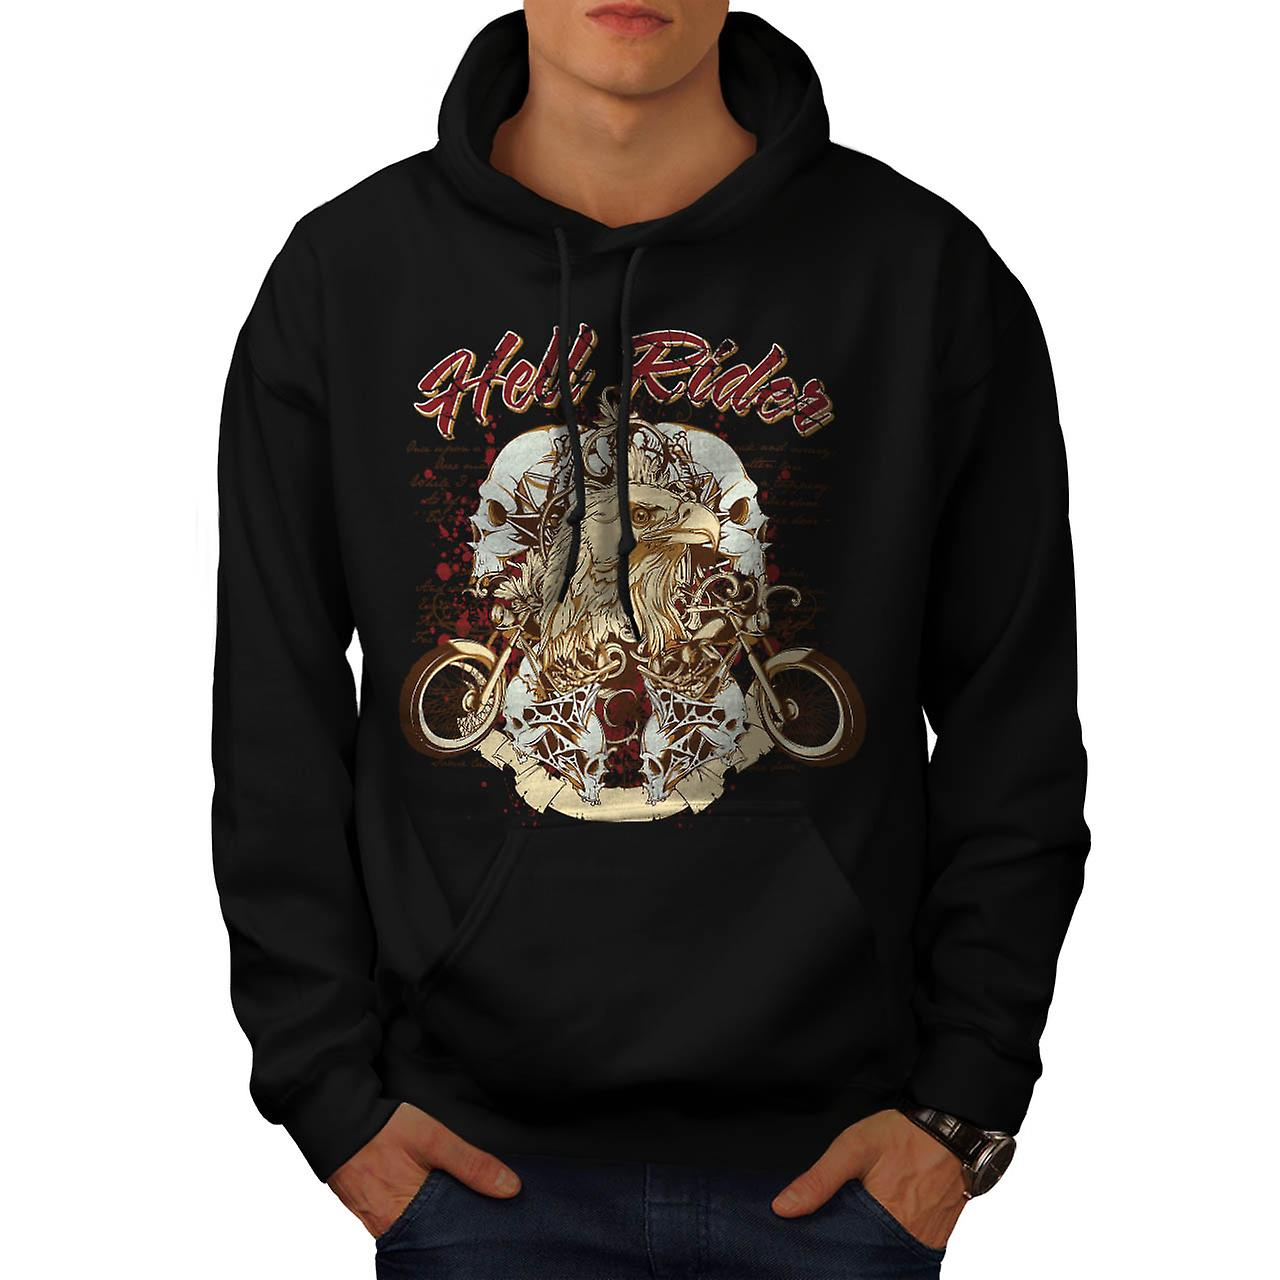 Hell Rider Biker Life Eagle Bike Men Black Hoodie | Wellcoda